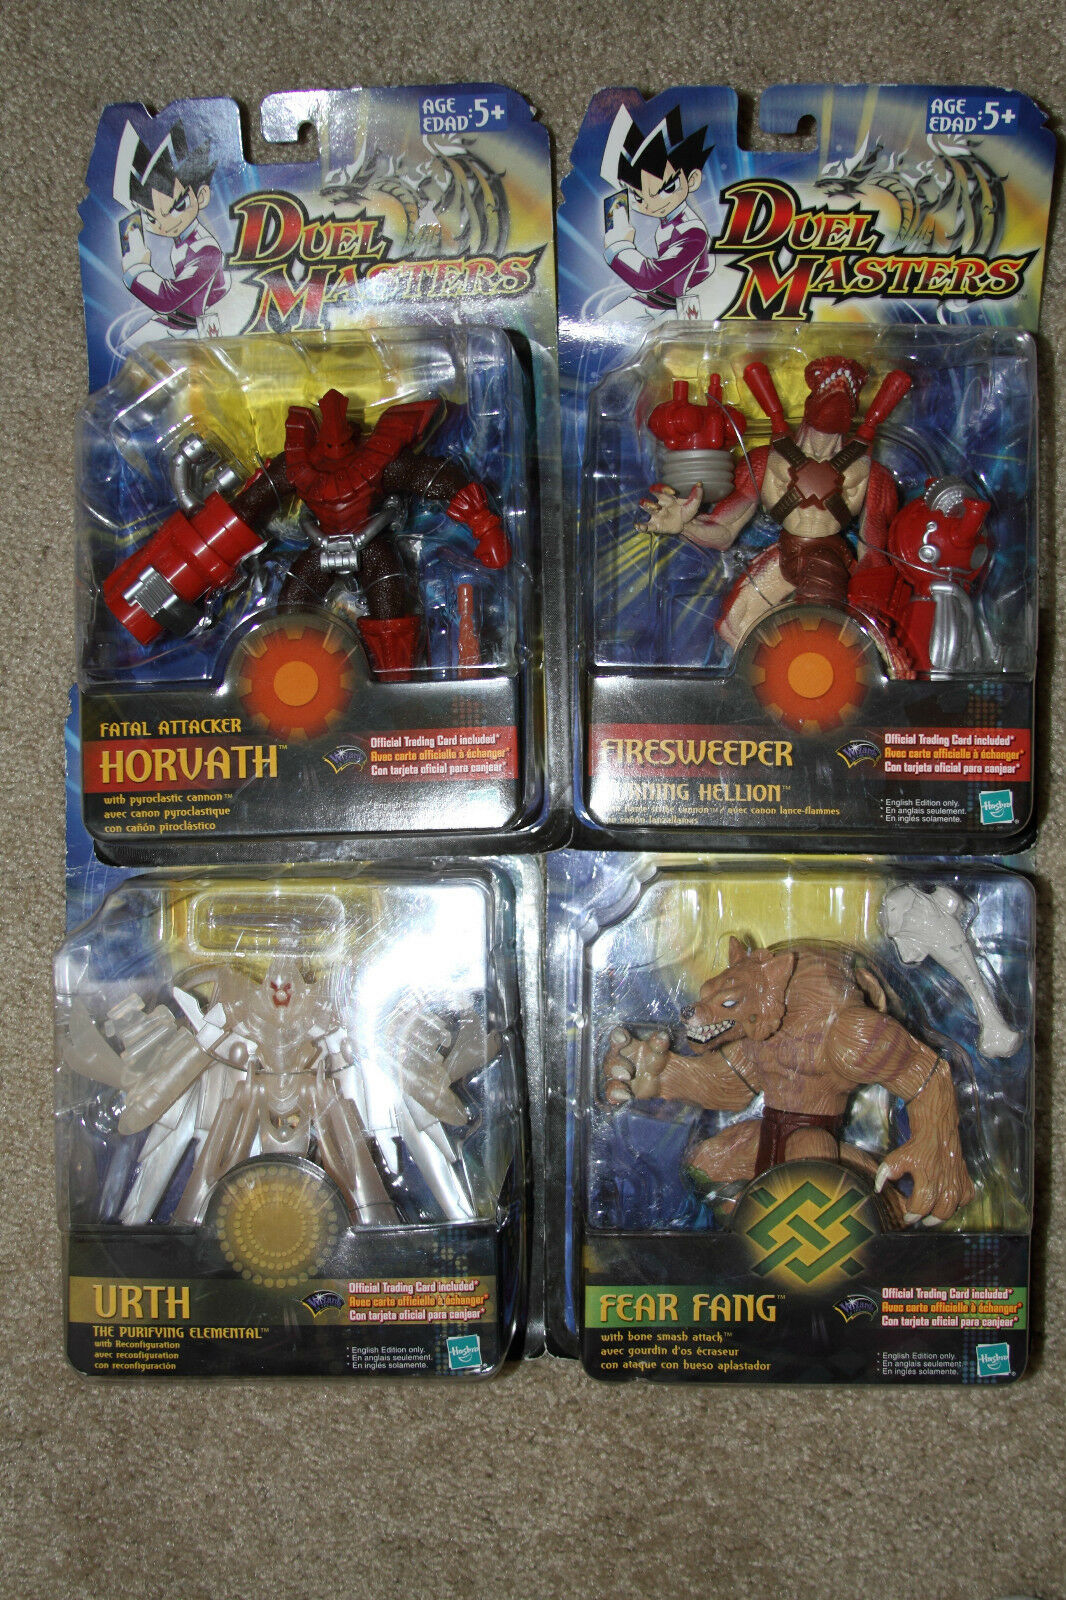 DUEL MASTERS figures set of 4 Horvath, Firesweeper, Urth and Fear Fang